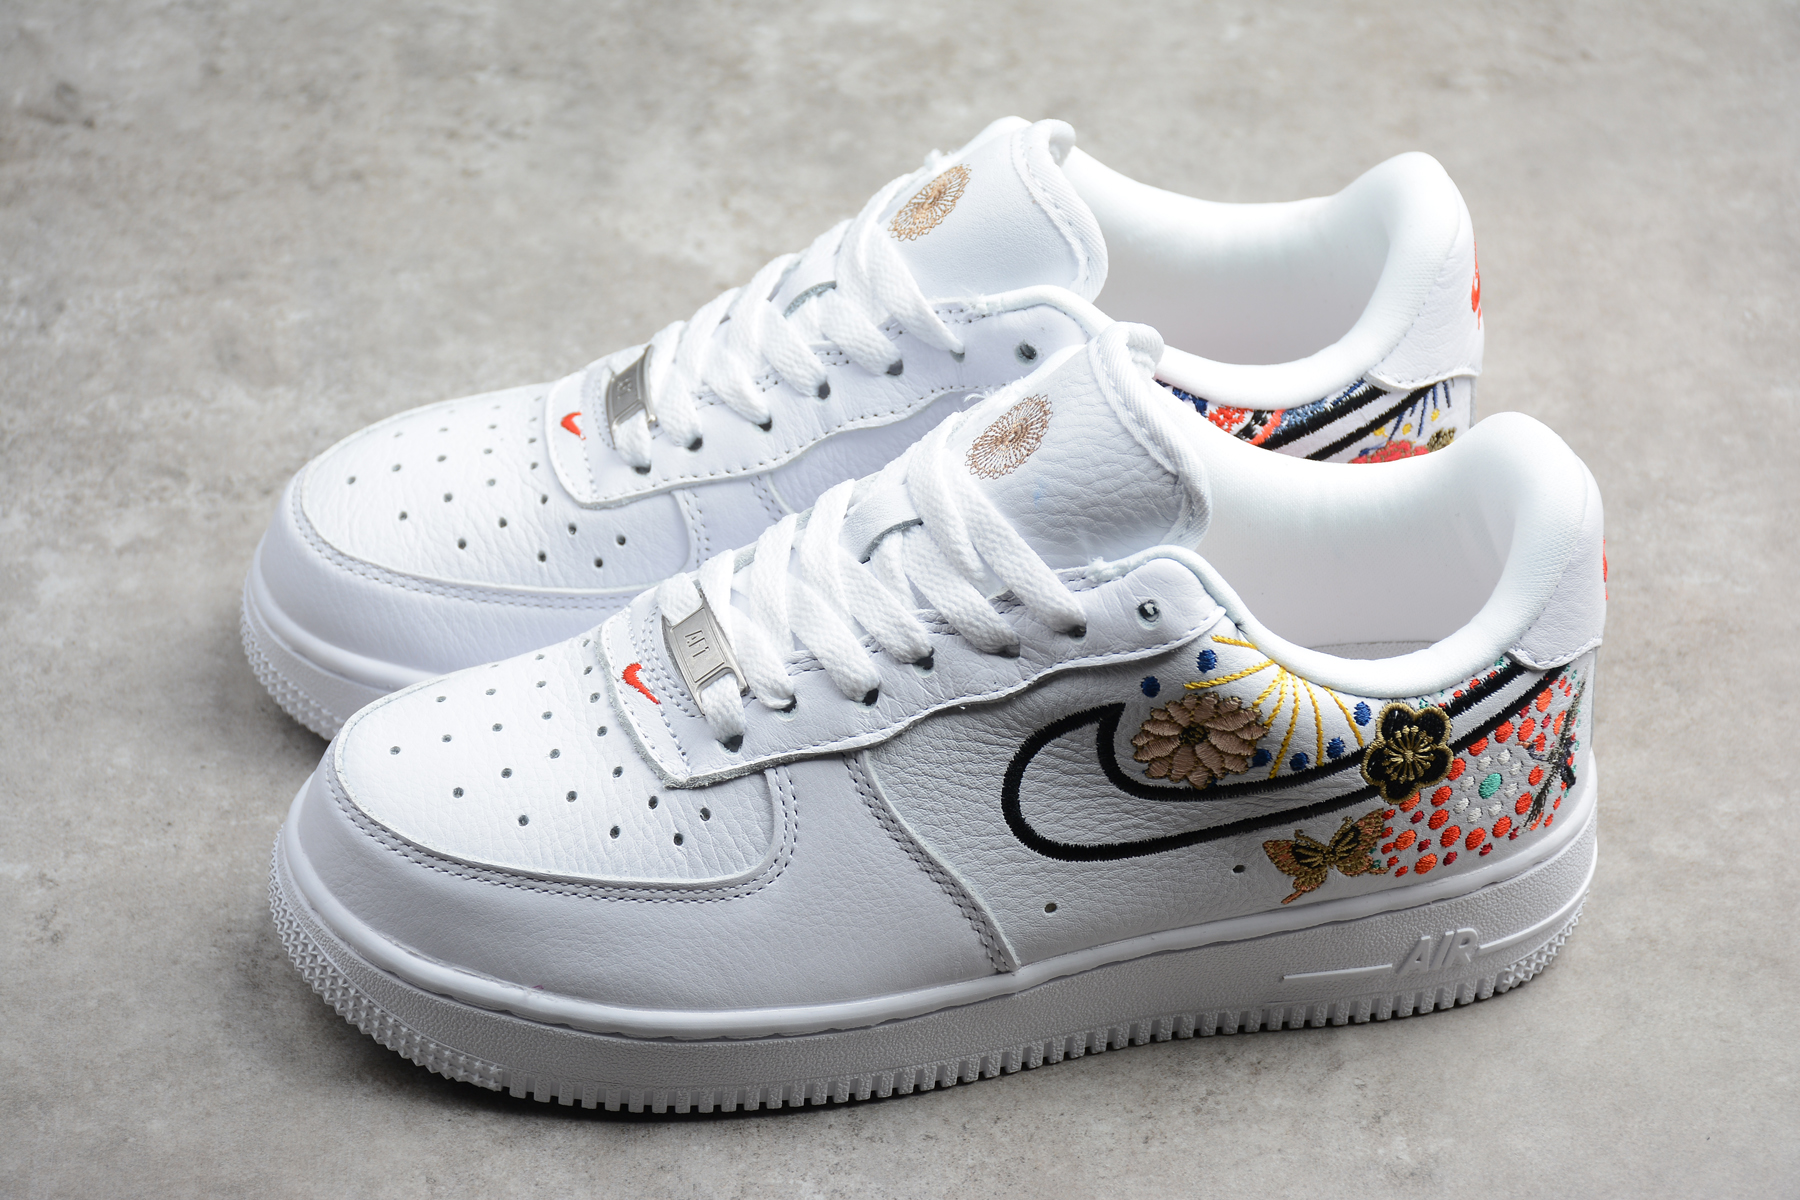 Nike WMNS Air Force 1 LNY White Habanero Red